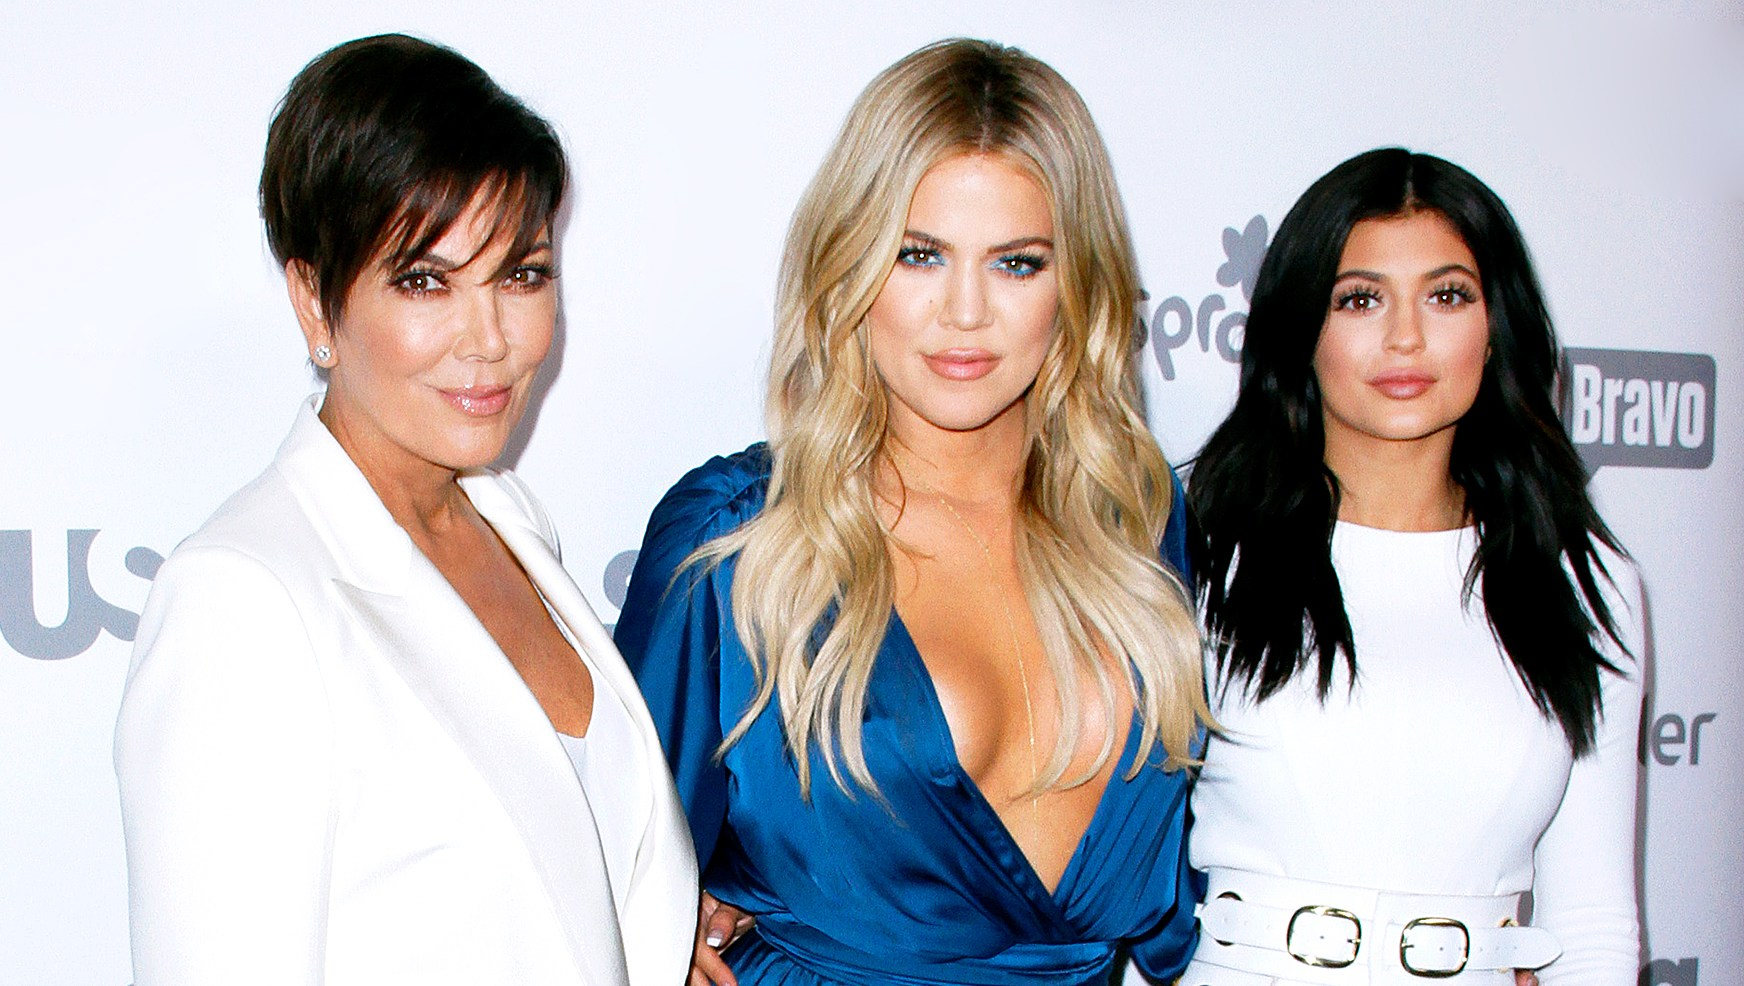 Kris Jenner, Khloe Kardashian and Kylie Jenner attend the 2015 NBCUniversal Cable Entertainment Upfront at The Jacob K. Javits Convention Center in New York City.